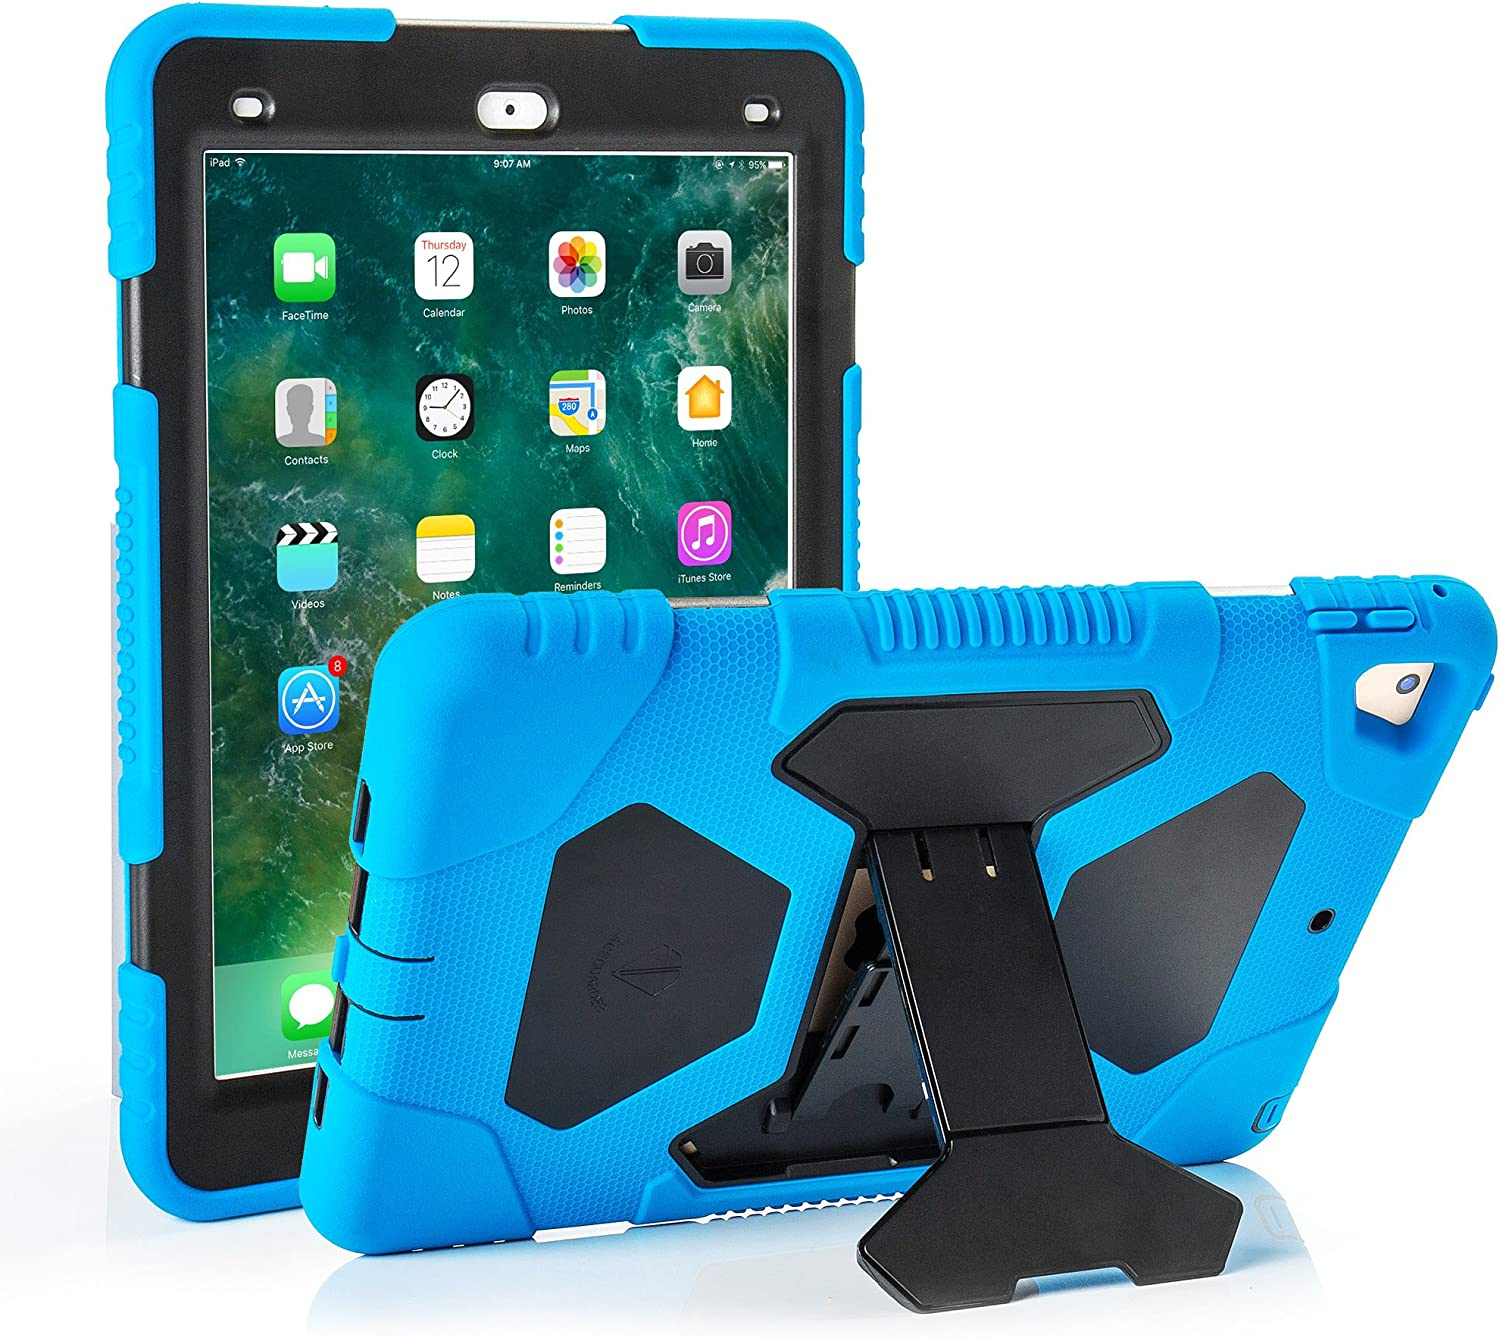 ACEGUARDER iPad 2017/2018 iPad 9.7 inch Case, Shockproof Impact Resistant Protective Case Cover Full Body Rugged for Kids with Kickstand for ipad 5 th/ipad 6 th Generation, Blue Black